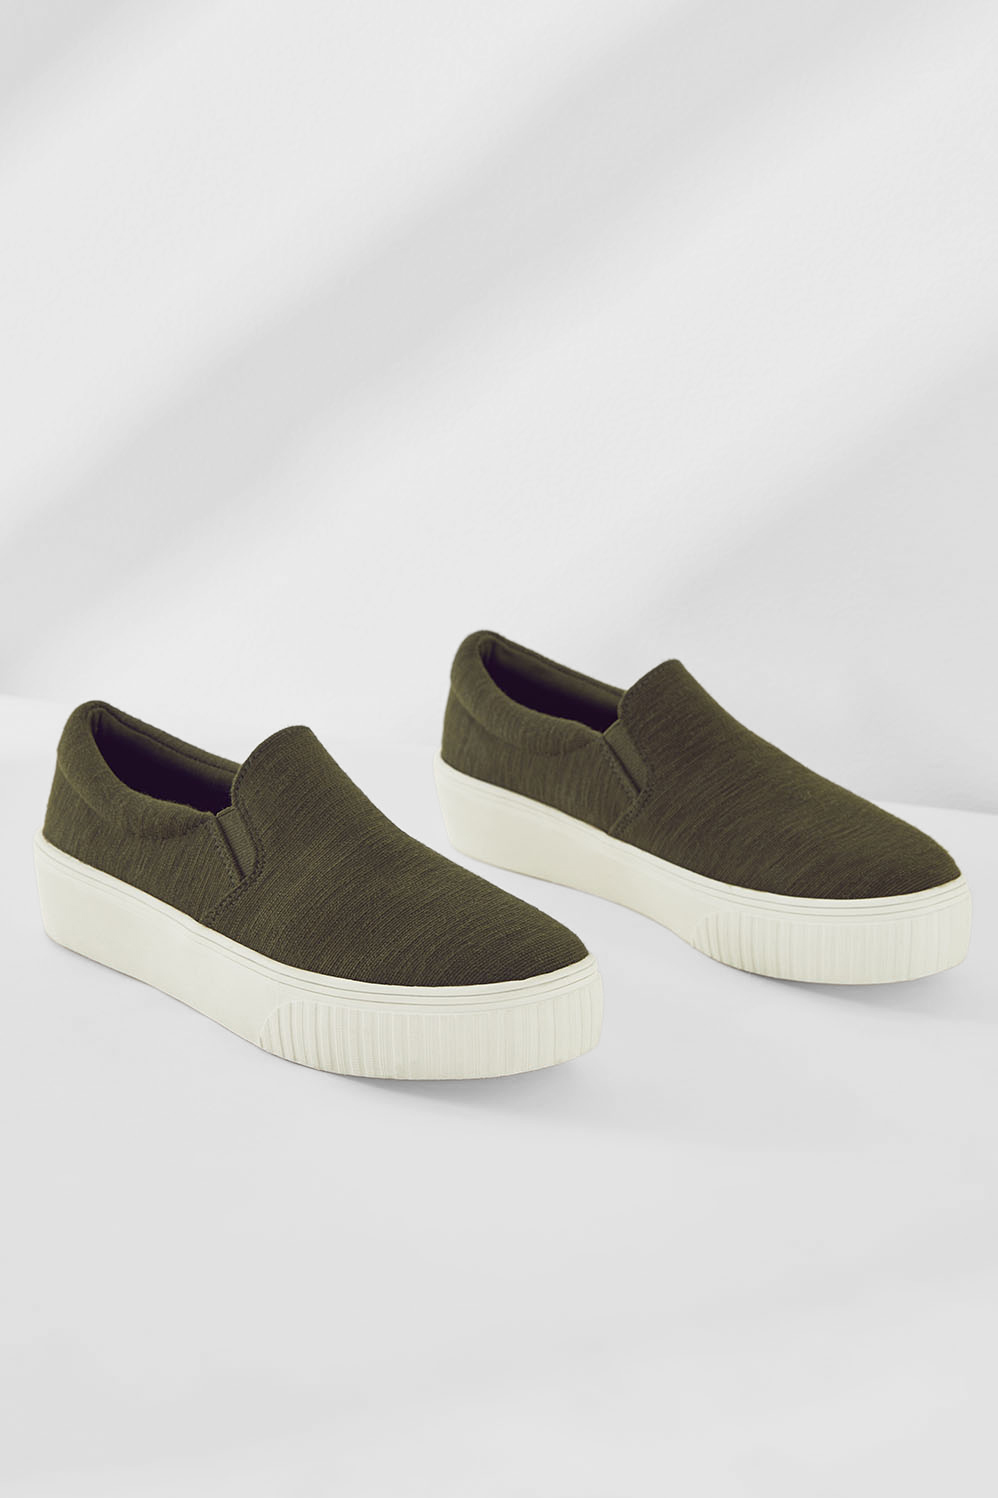 Fabletics Olive Platform Slip On Tennis Shoes